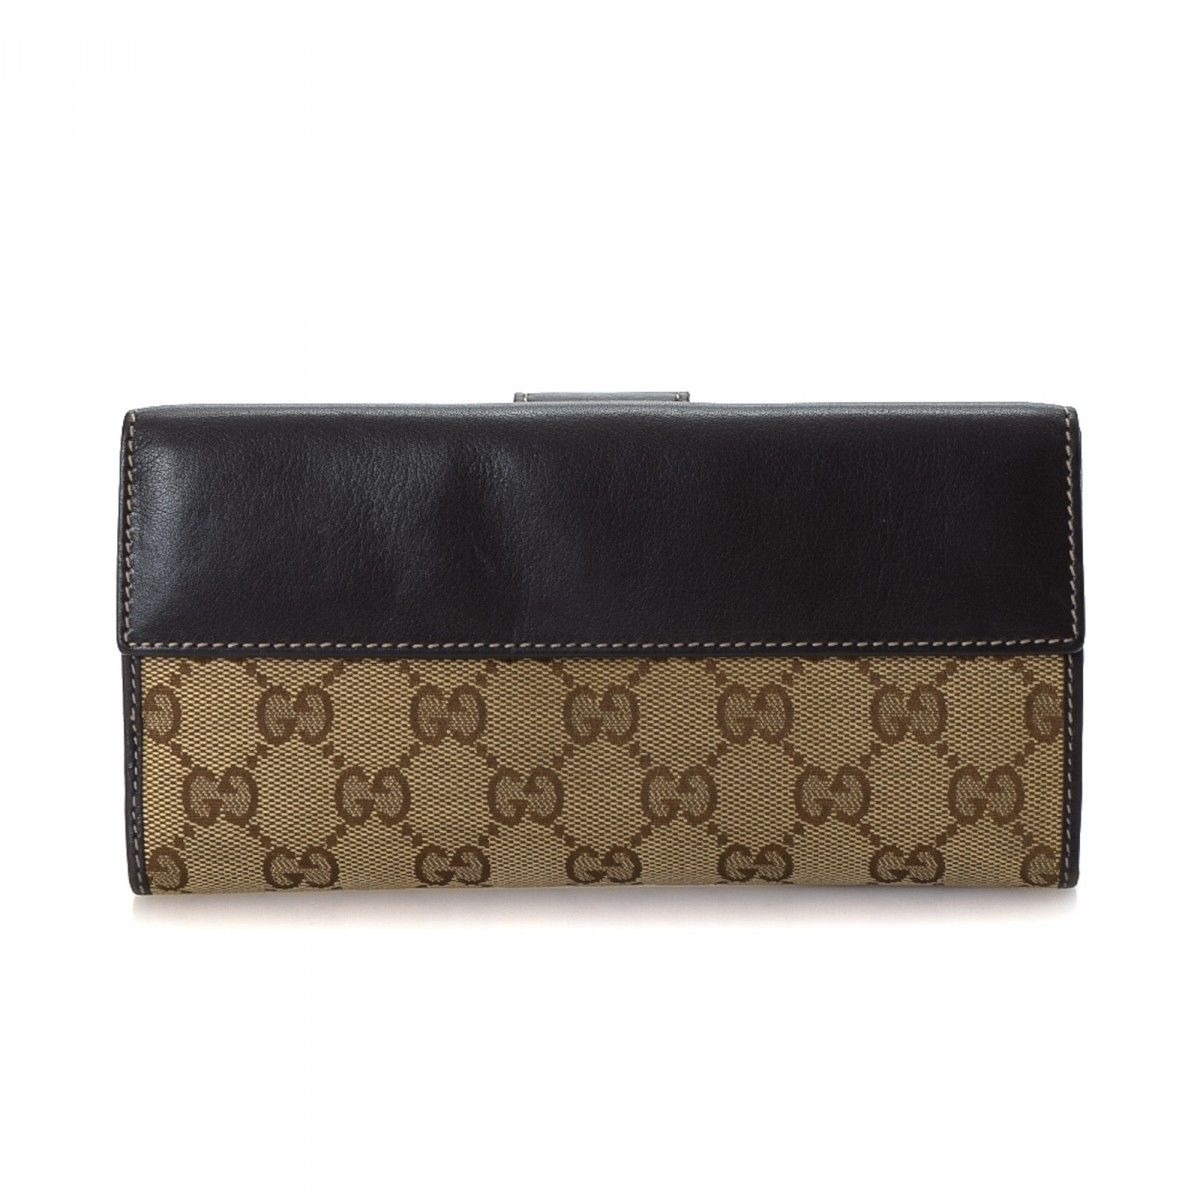 1aaae327b817 Gucci Heart Continental Wallet GG Canvas - LXRandCo - Pre-Owned ...